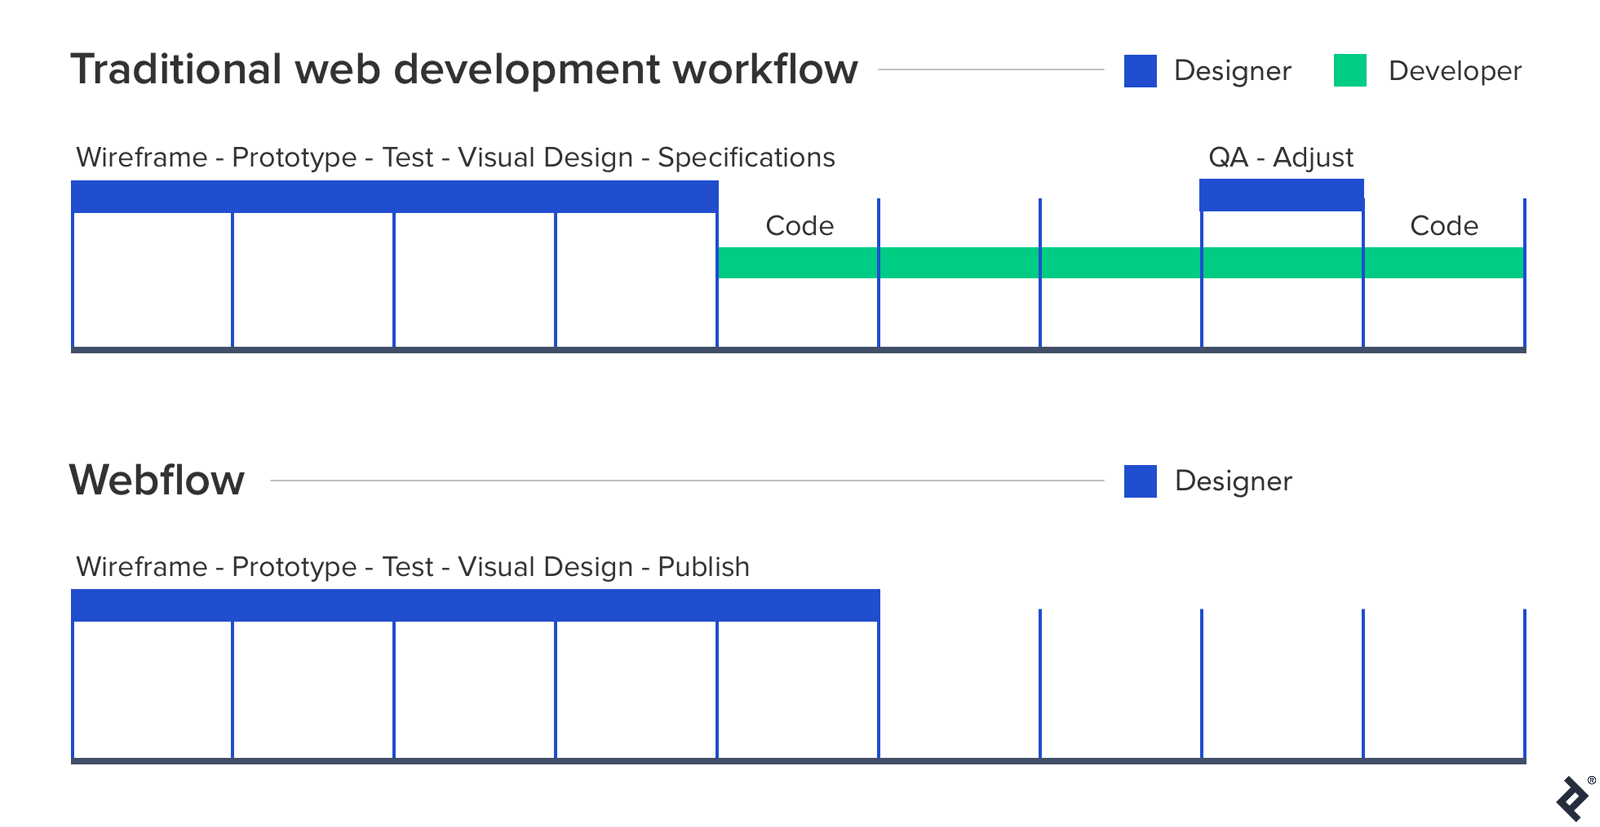 The benefits of Webflow can be explored in-depth by exploring the library of Webflow tutorials